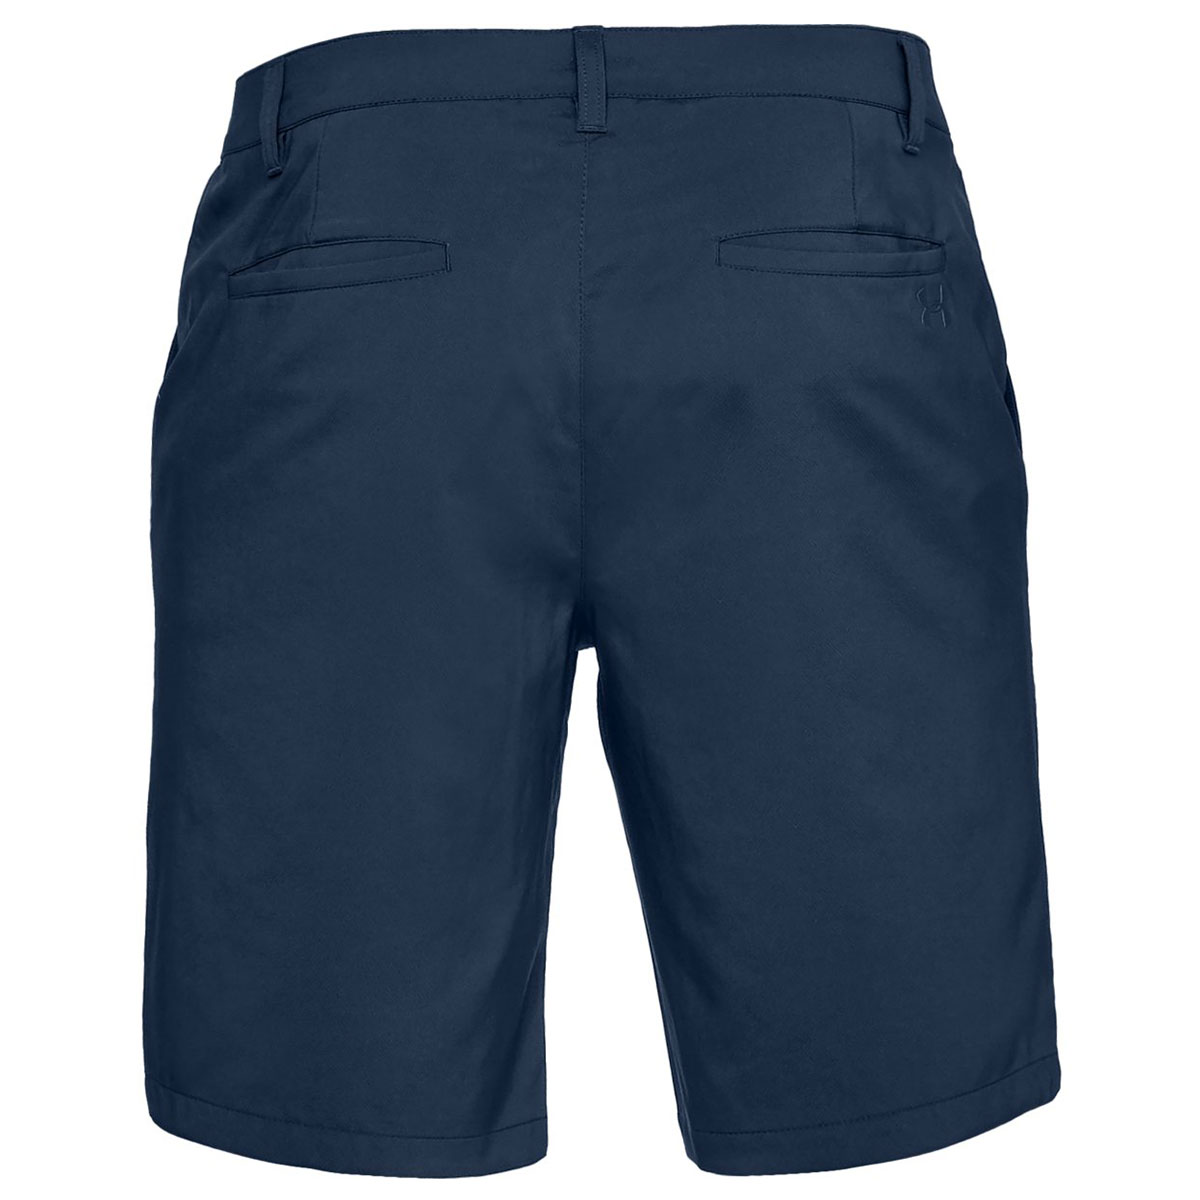 Under-Armour-Mens-EU-Tech-Stretch-Soft-Fitted-Golf-Shorts Indexbild 13